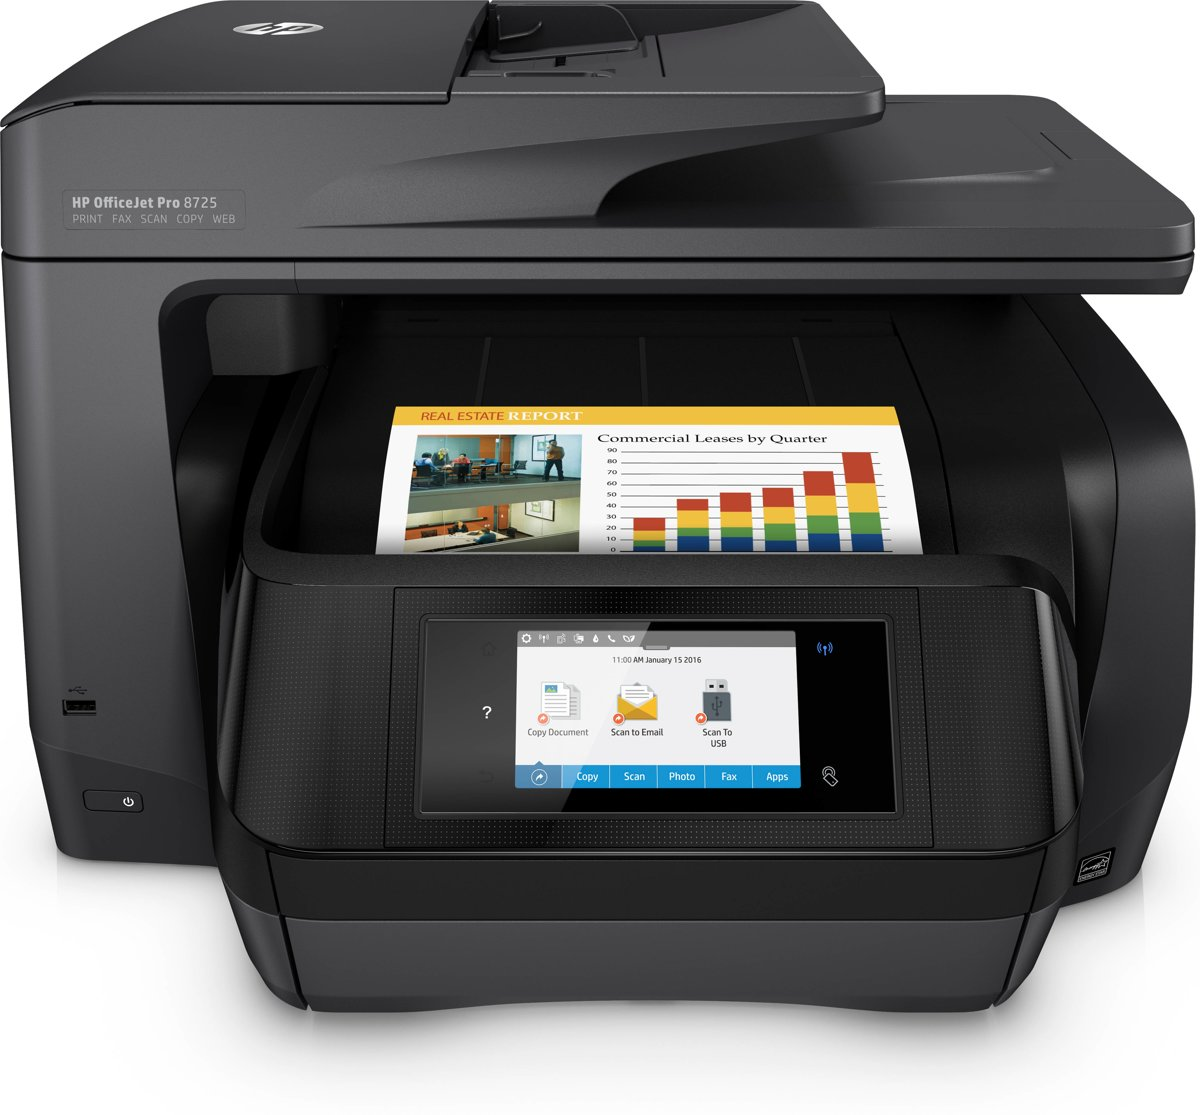 OfficeJet Pro 8725 - All-in-one